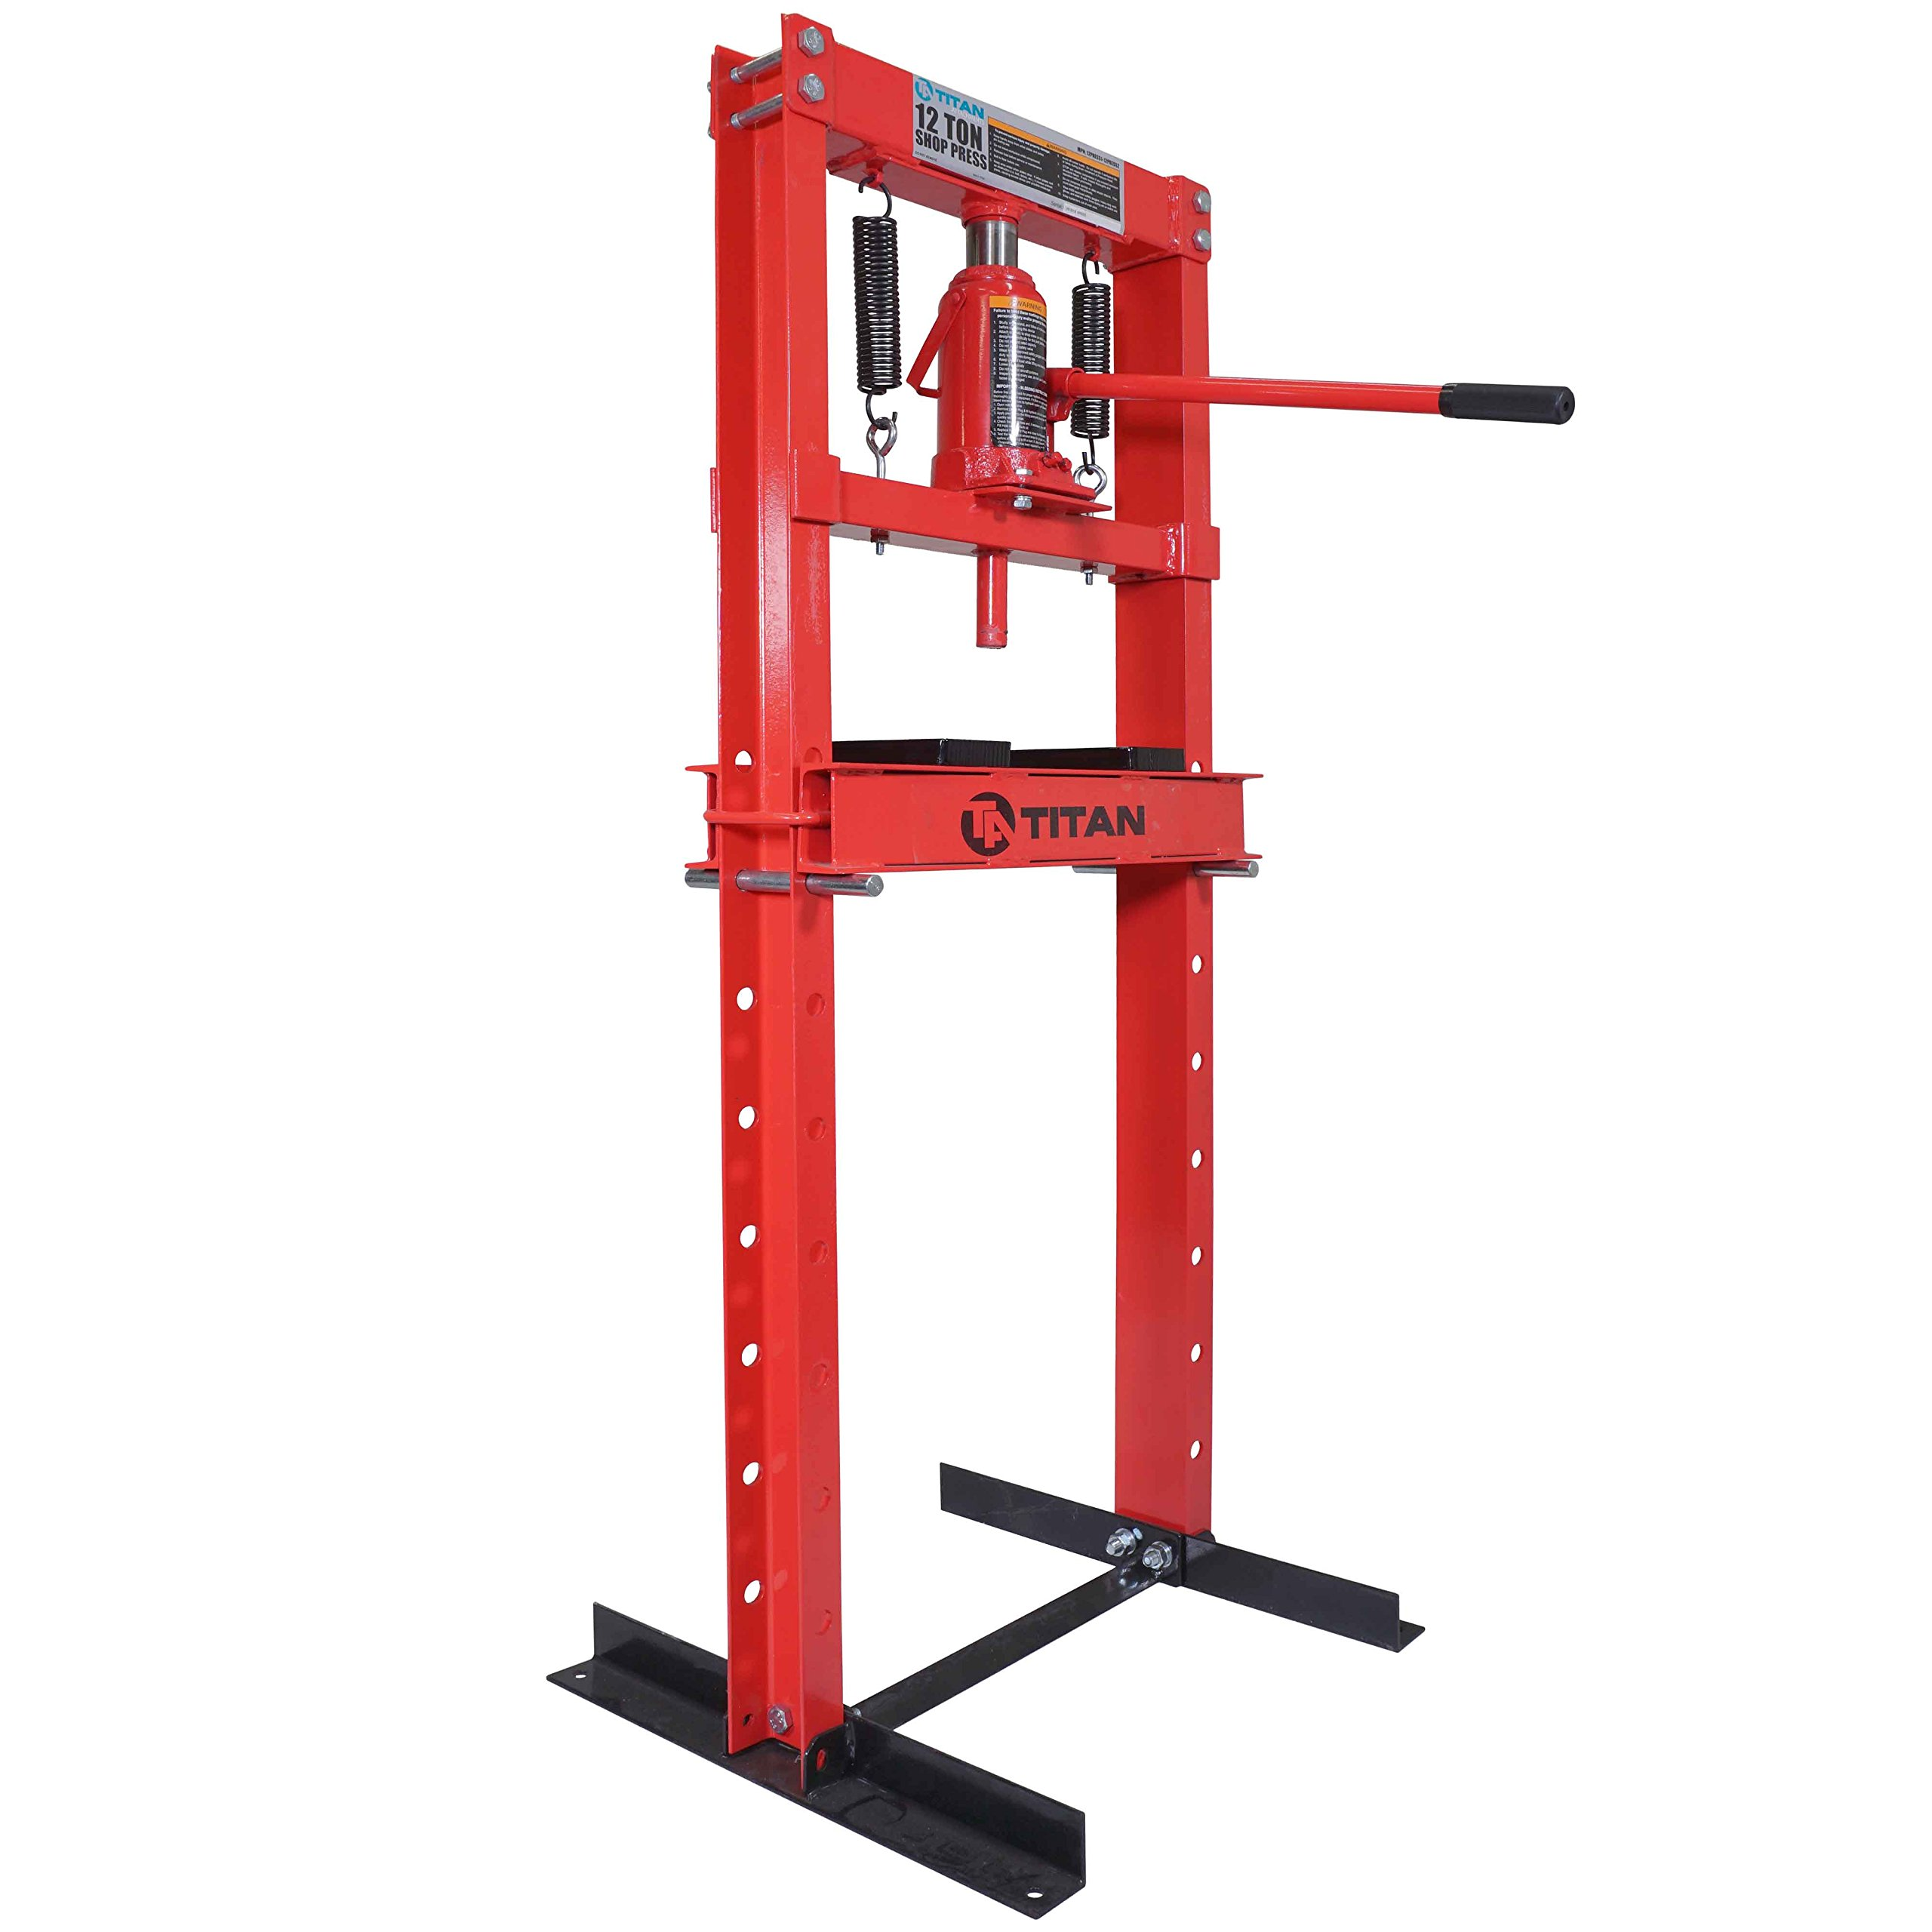 Titan 12 Ton Hydraulic Shop Floor Press H Frame 24000 lb Heavy Duty Steel Plates